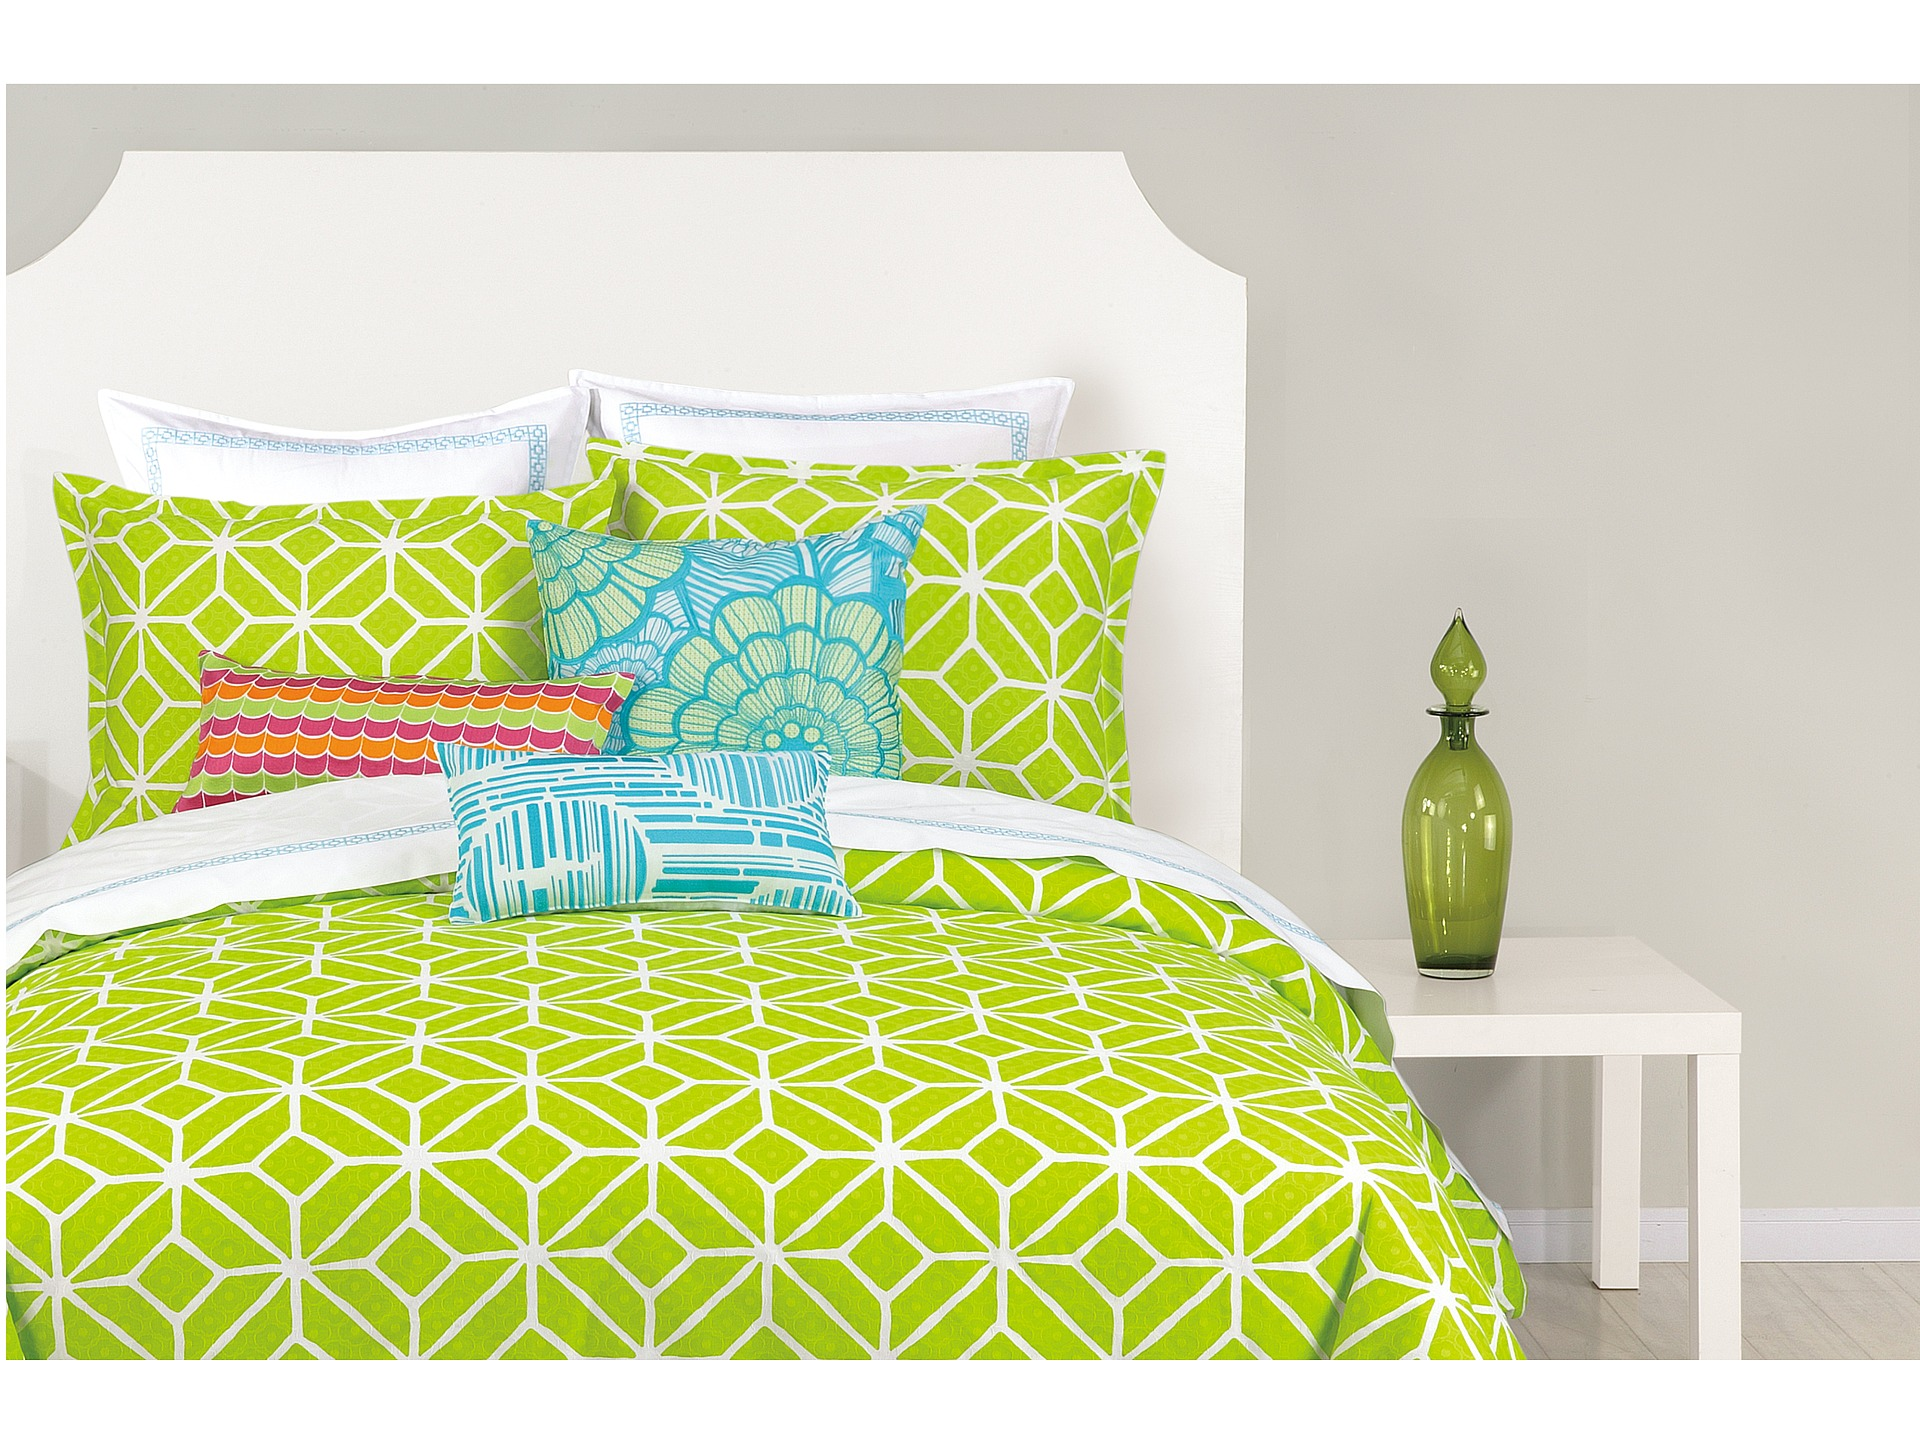 Trina Turk Trellis Comforter Set King Shipped Free At Zappos